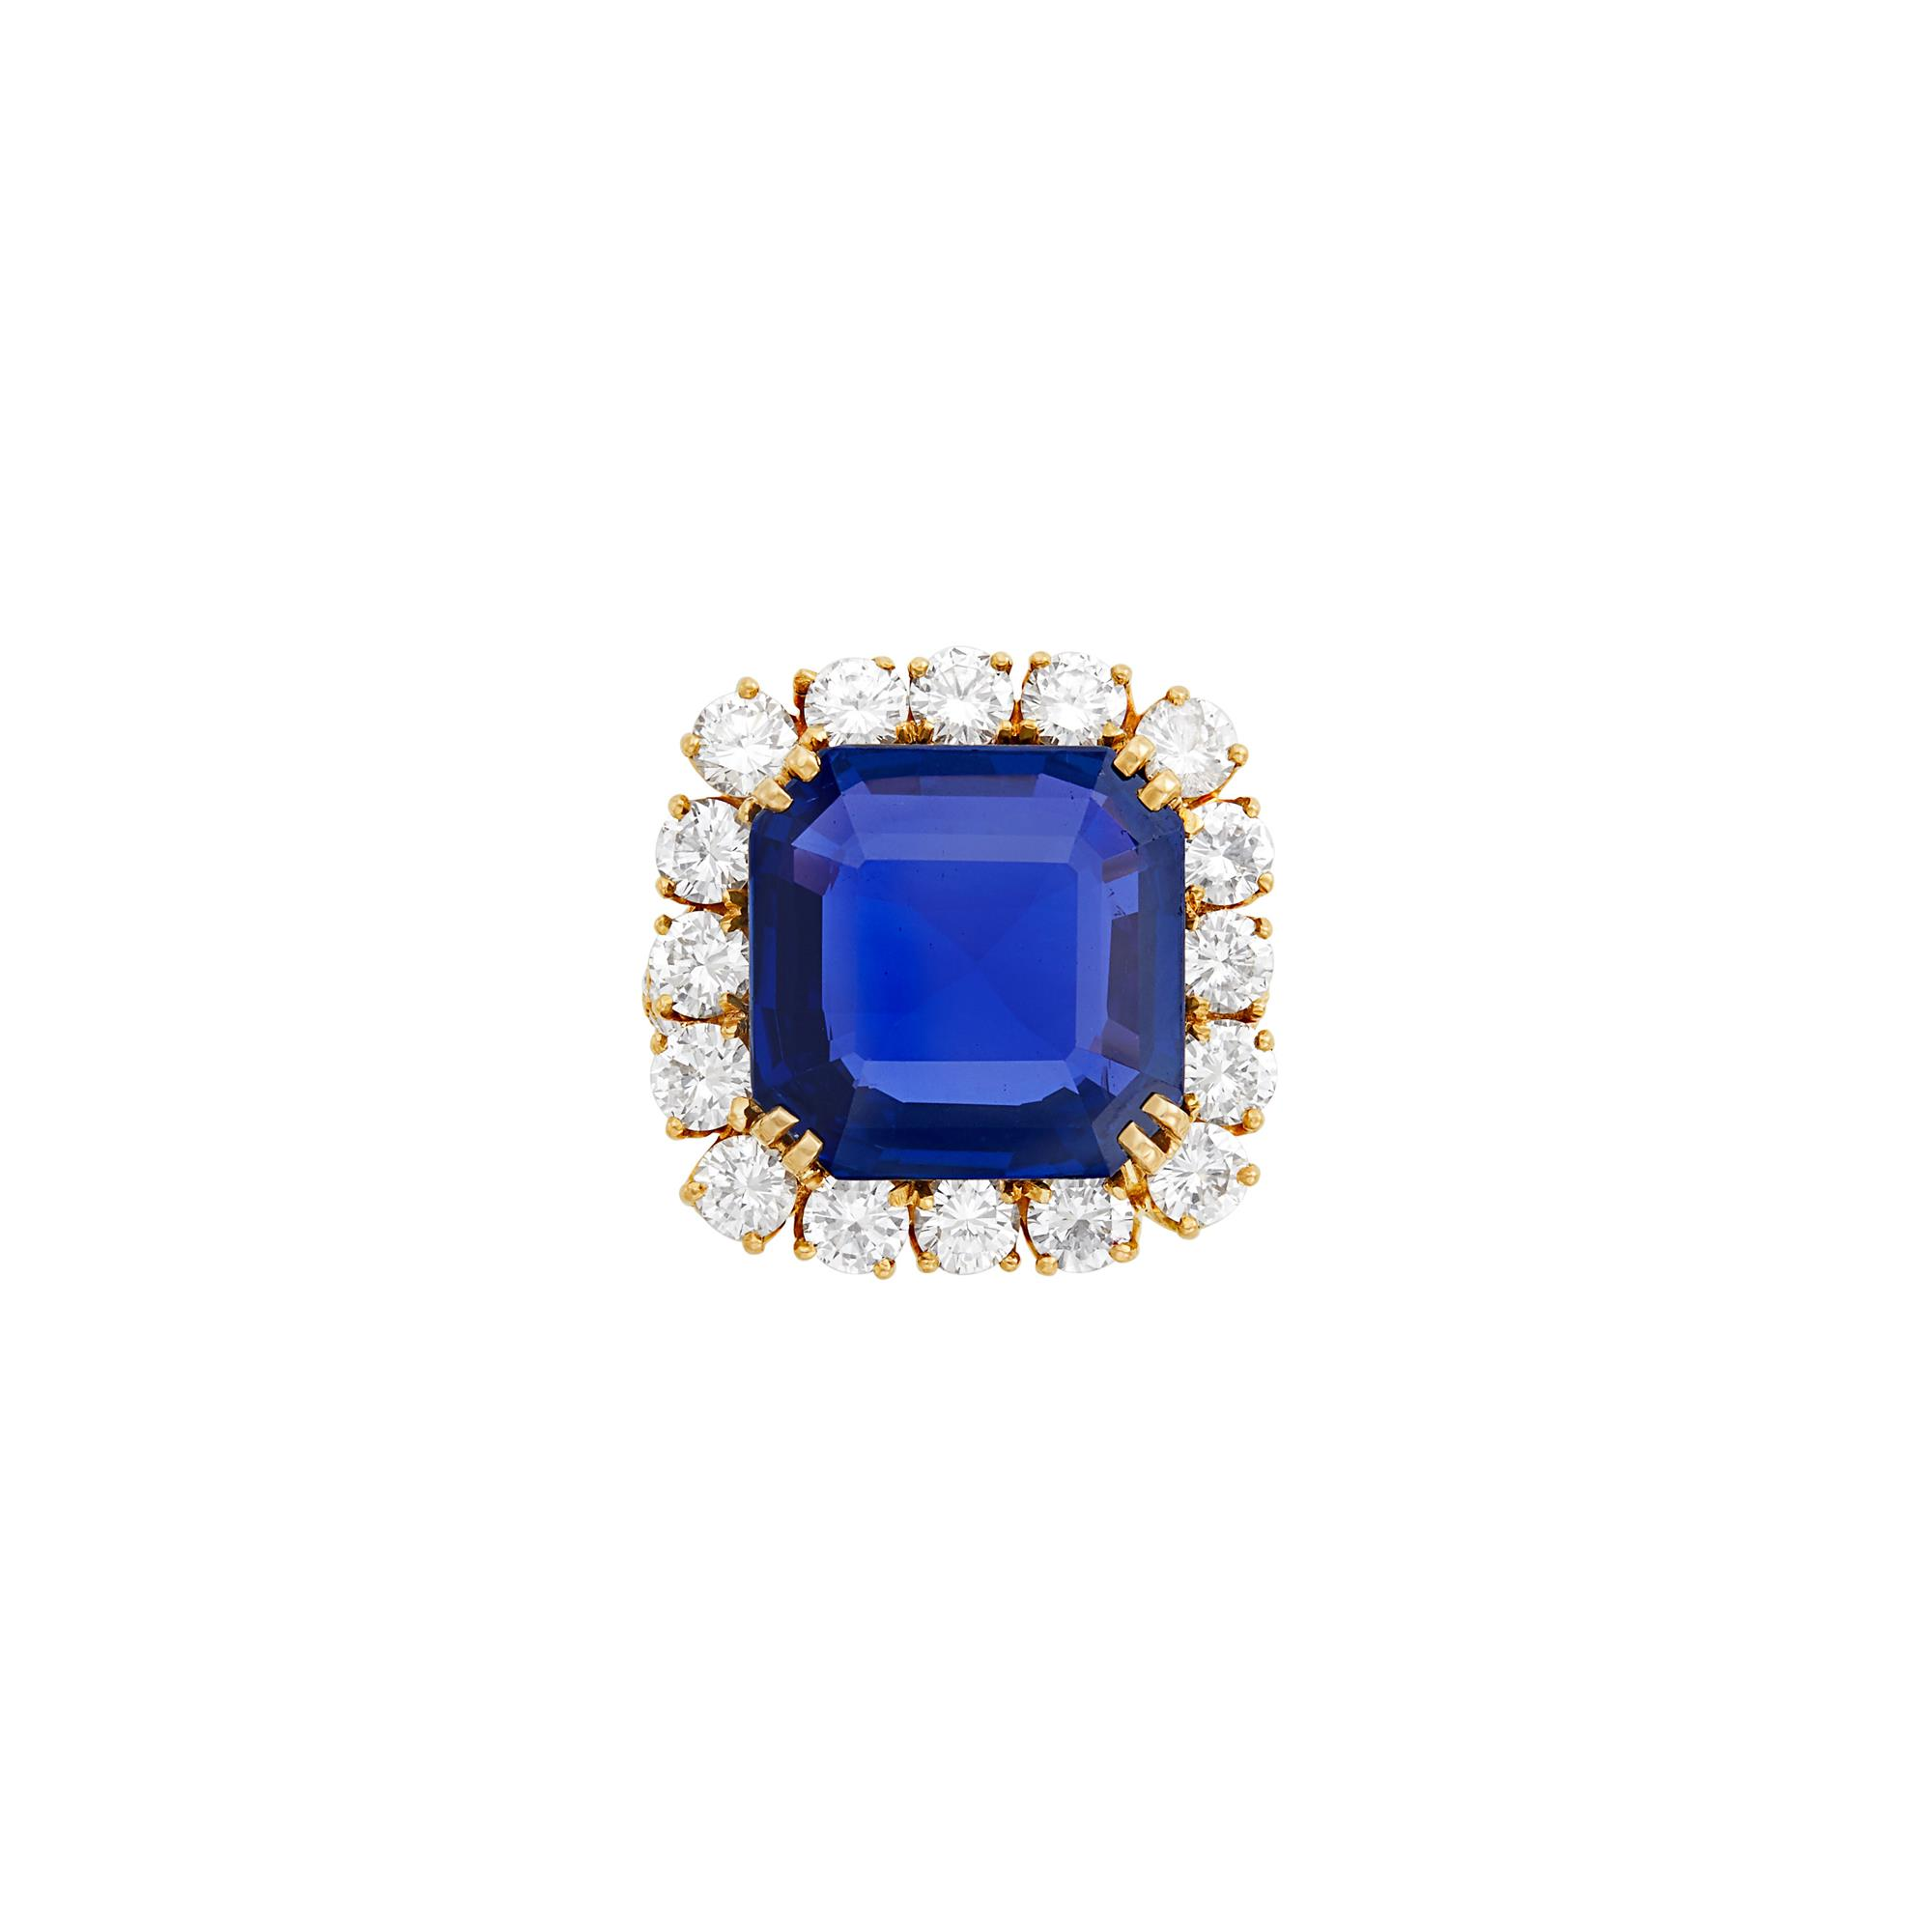 Lot image - Gold, Sapphire and Diamond Ring, Oscar Heyman Brothers